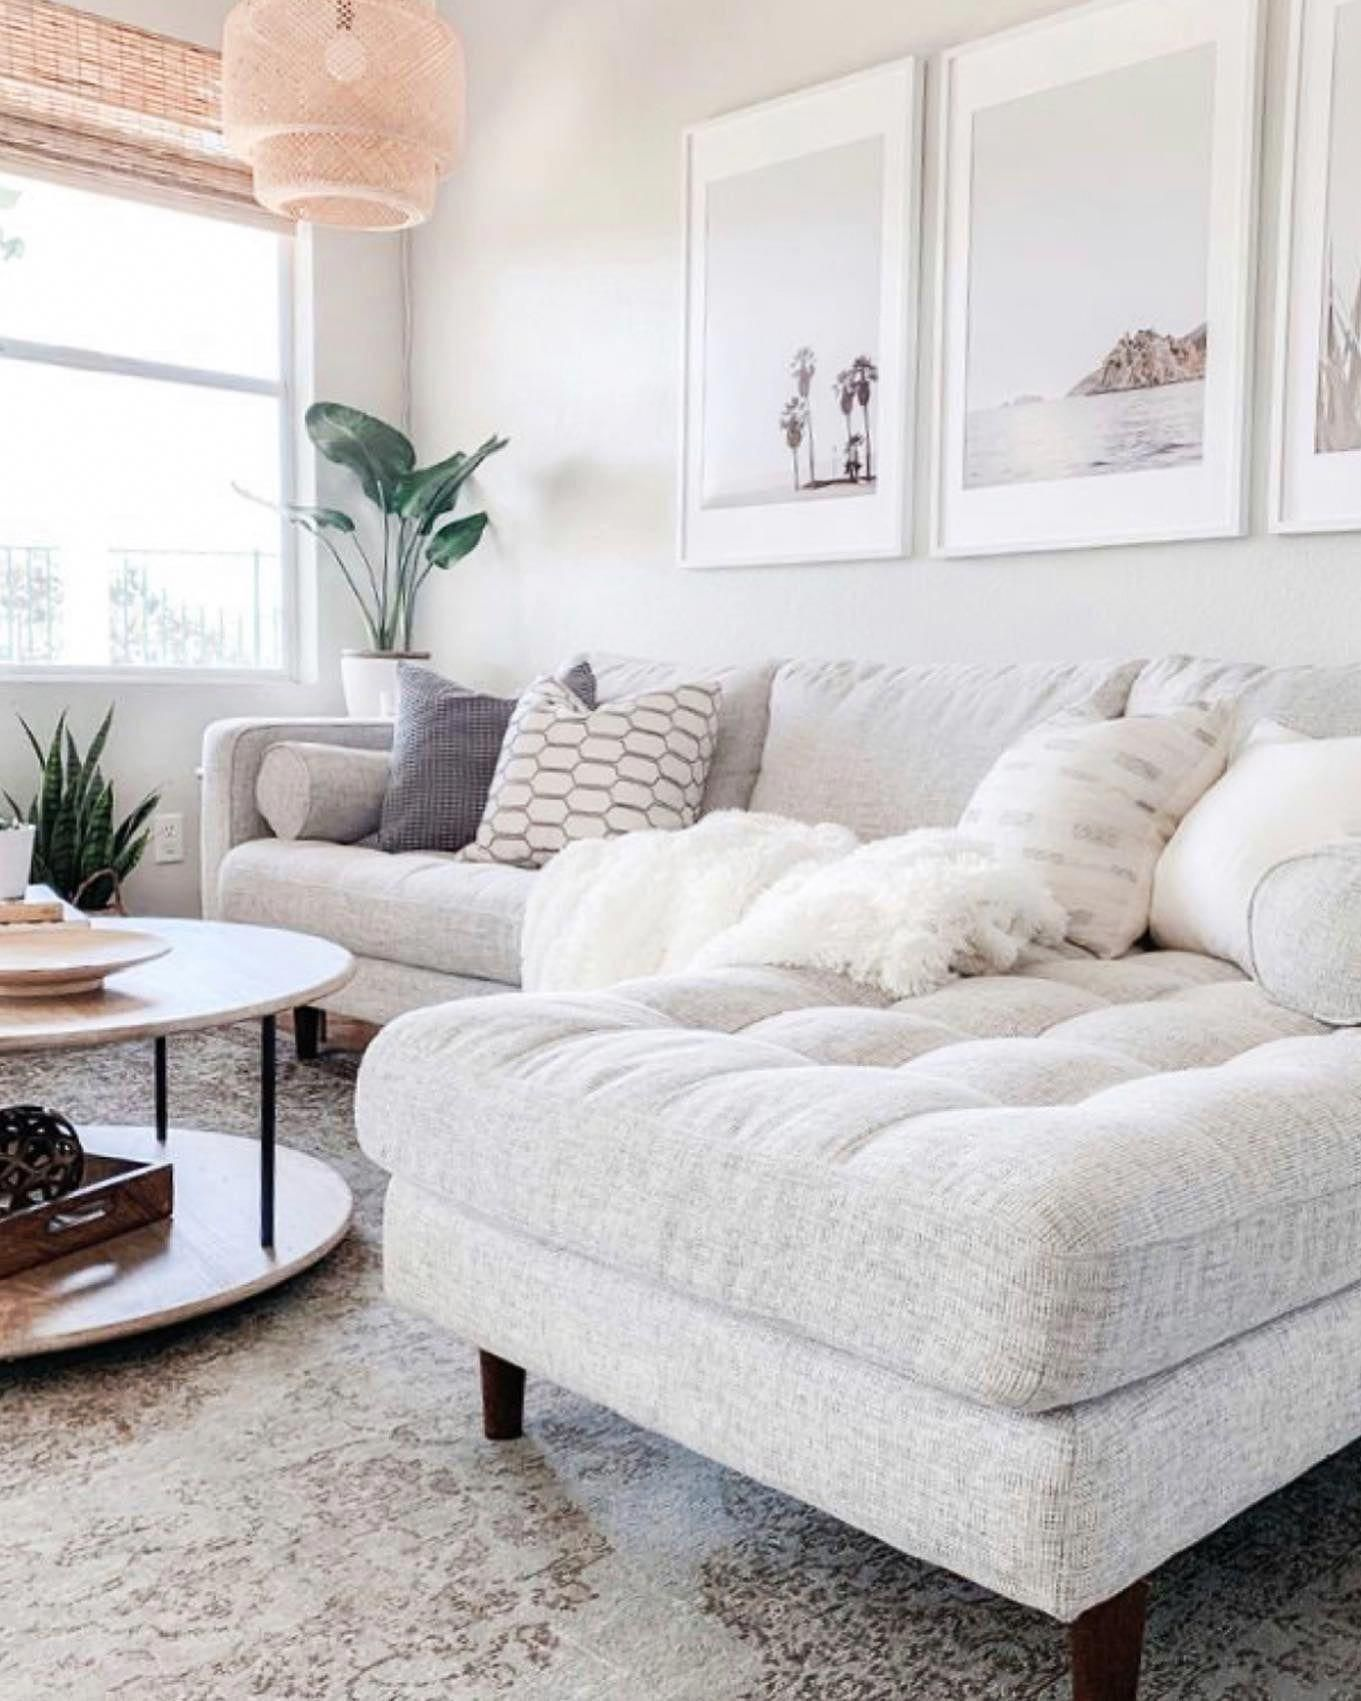 Top Uk Home Decor Blogs In 2020 Apartment Living Room Small Living Room Decor Farm House Living Room